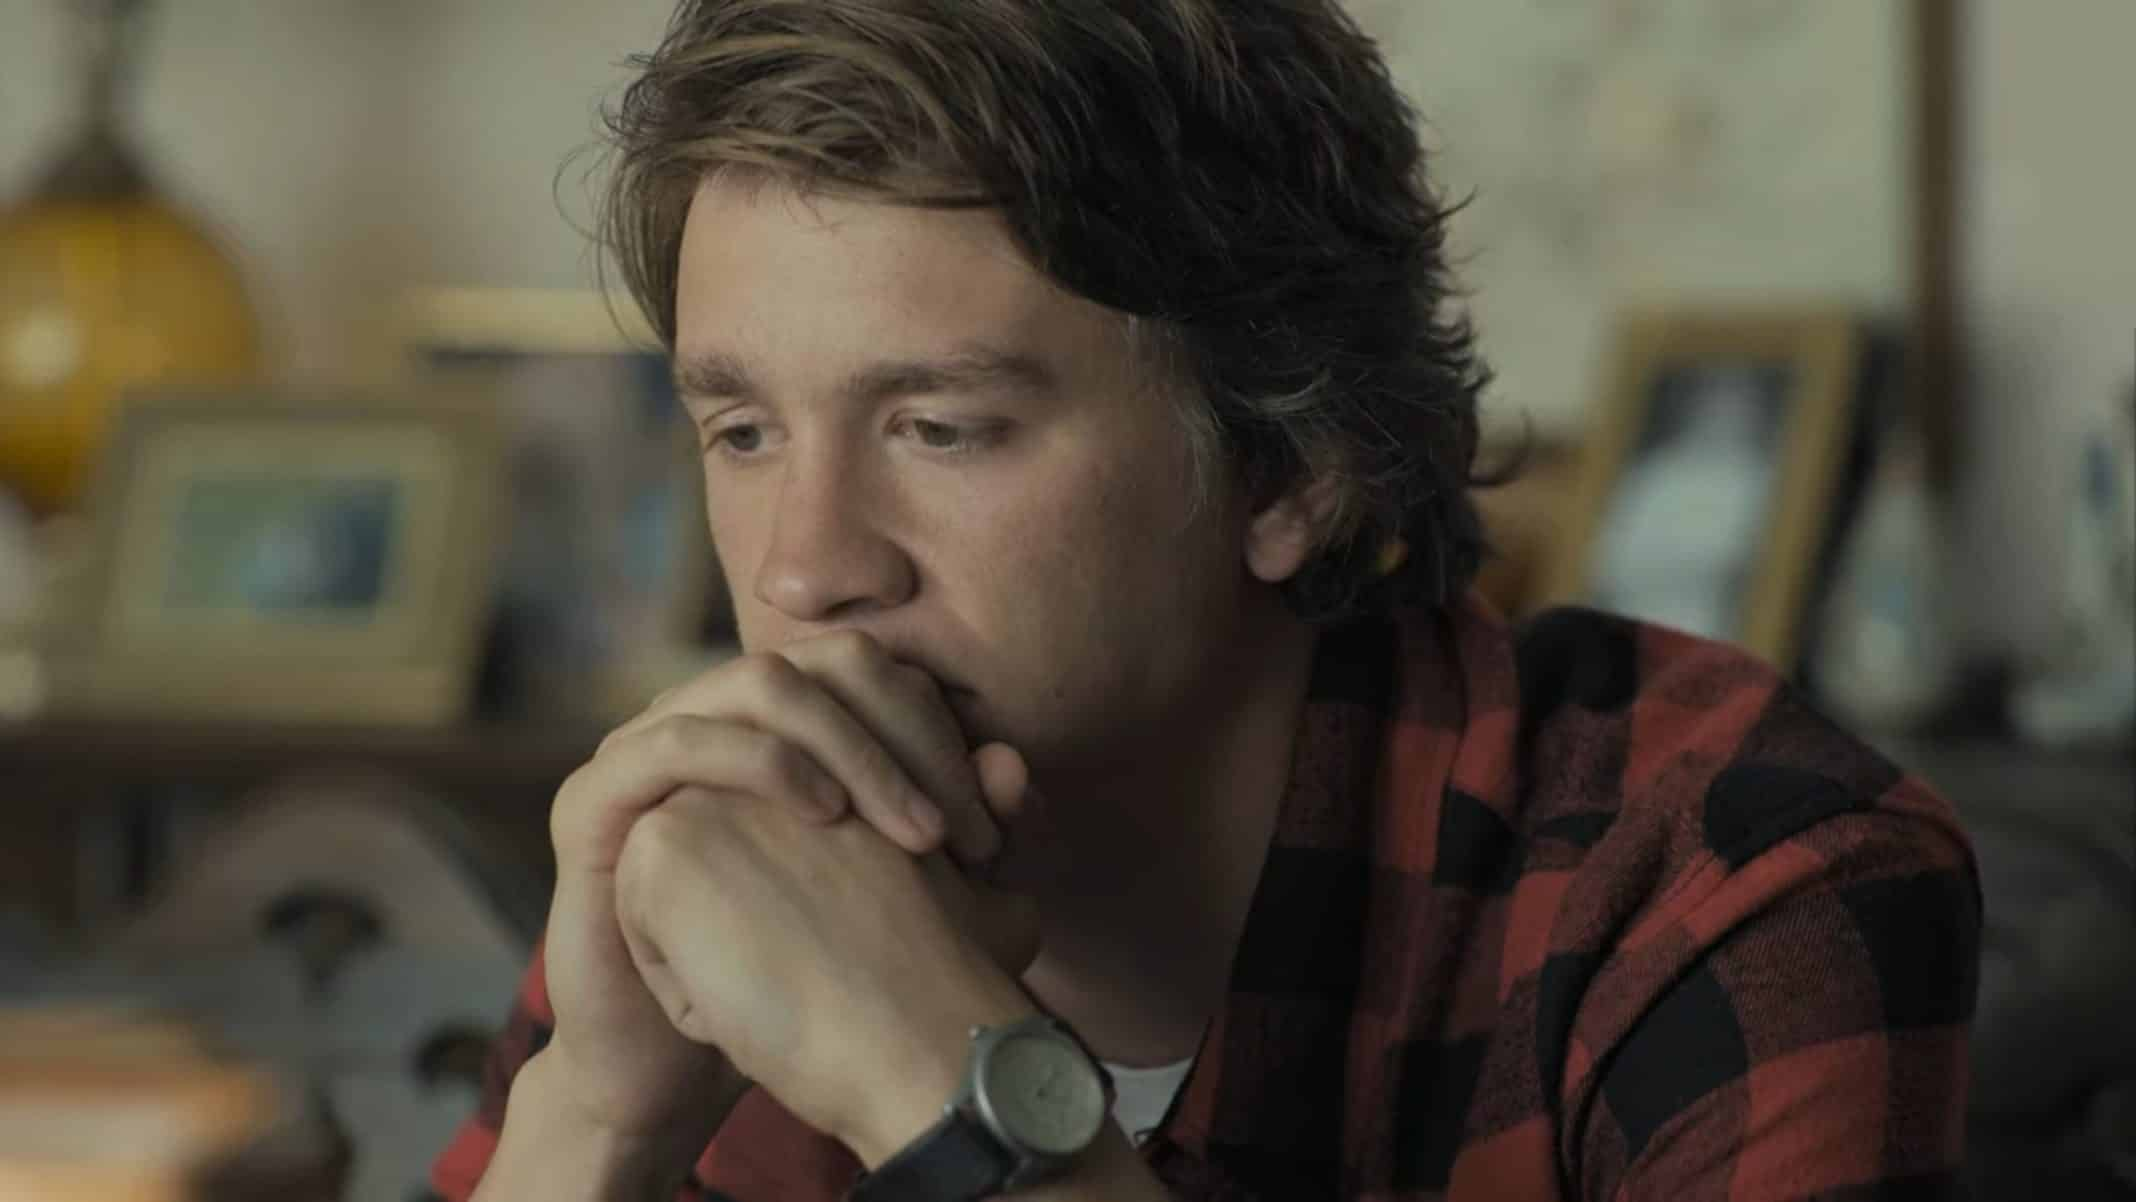 Ethan (Thomas Mann) thinking about life and how things have drastically changed.